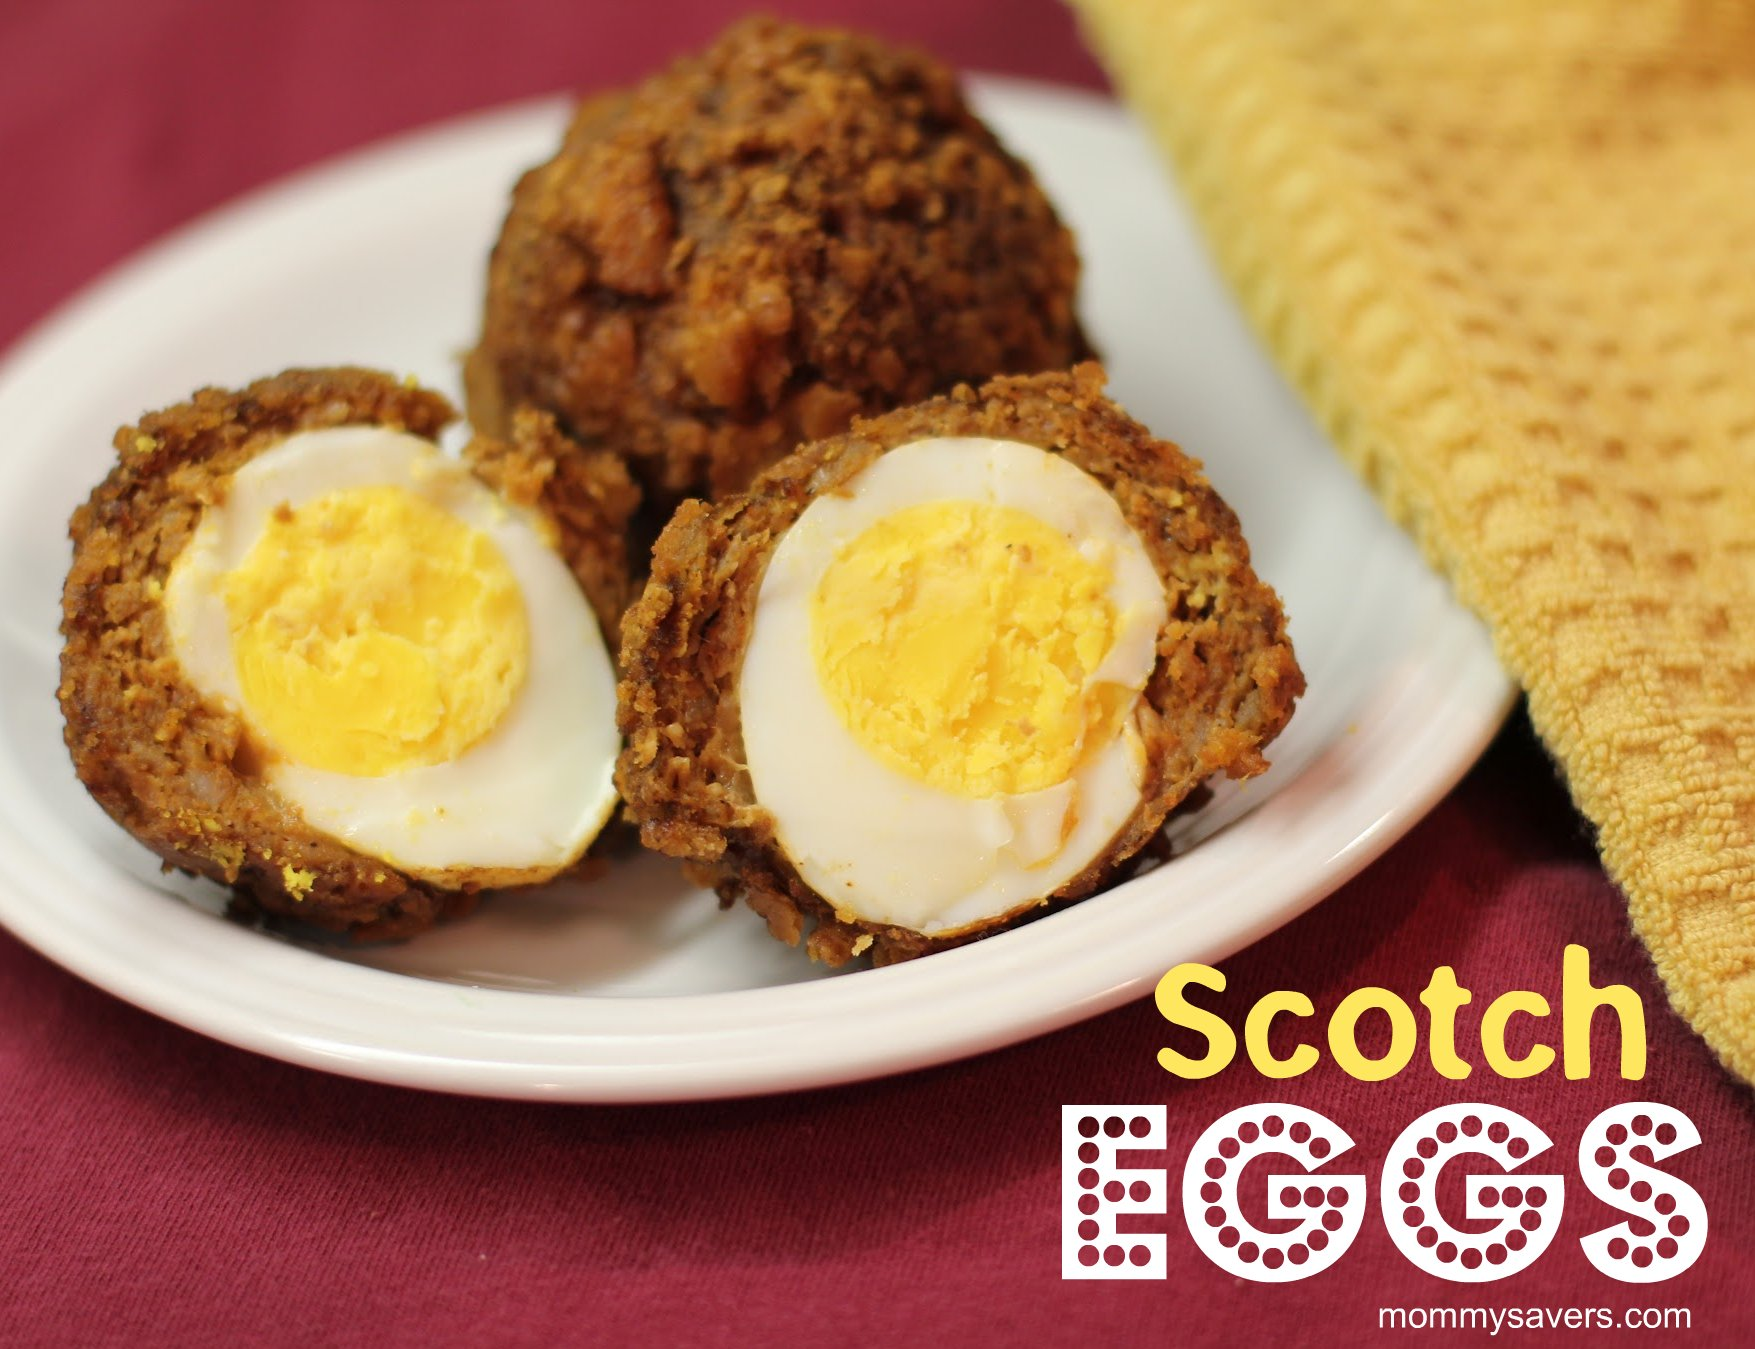 ... scotch eggs are a fun twist on eggs and sausage a hard boiled egg